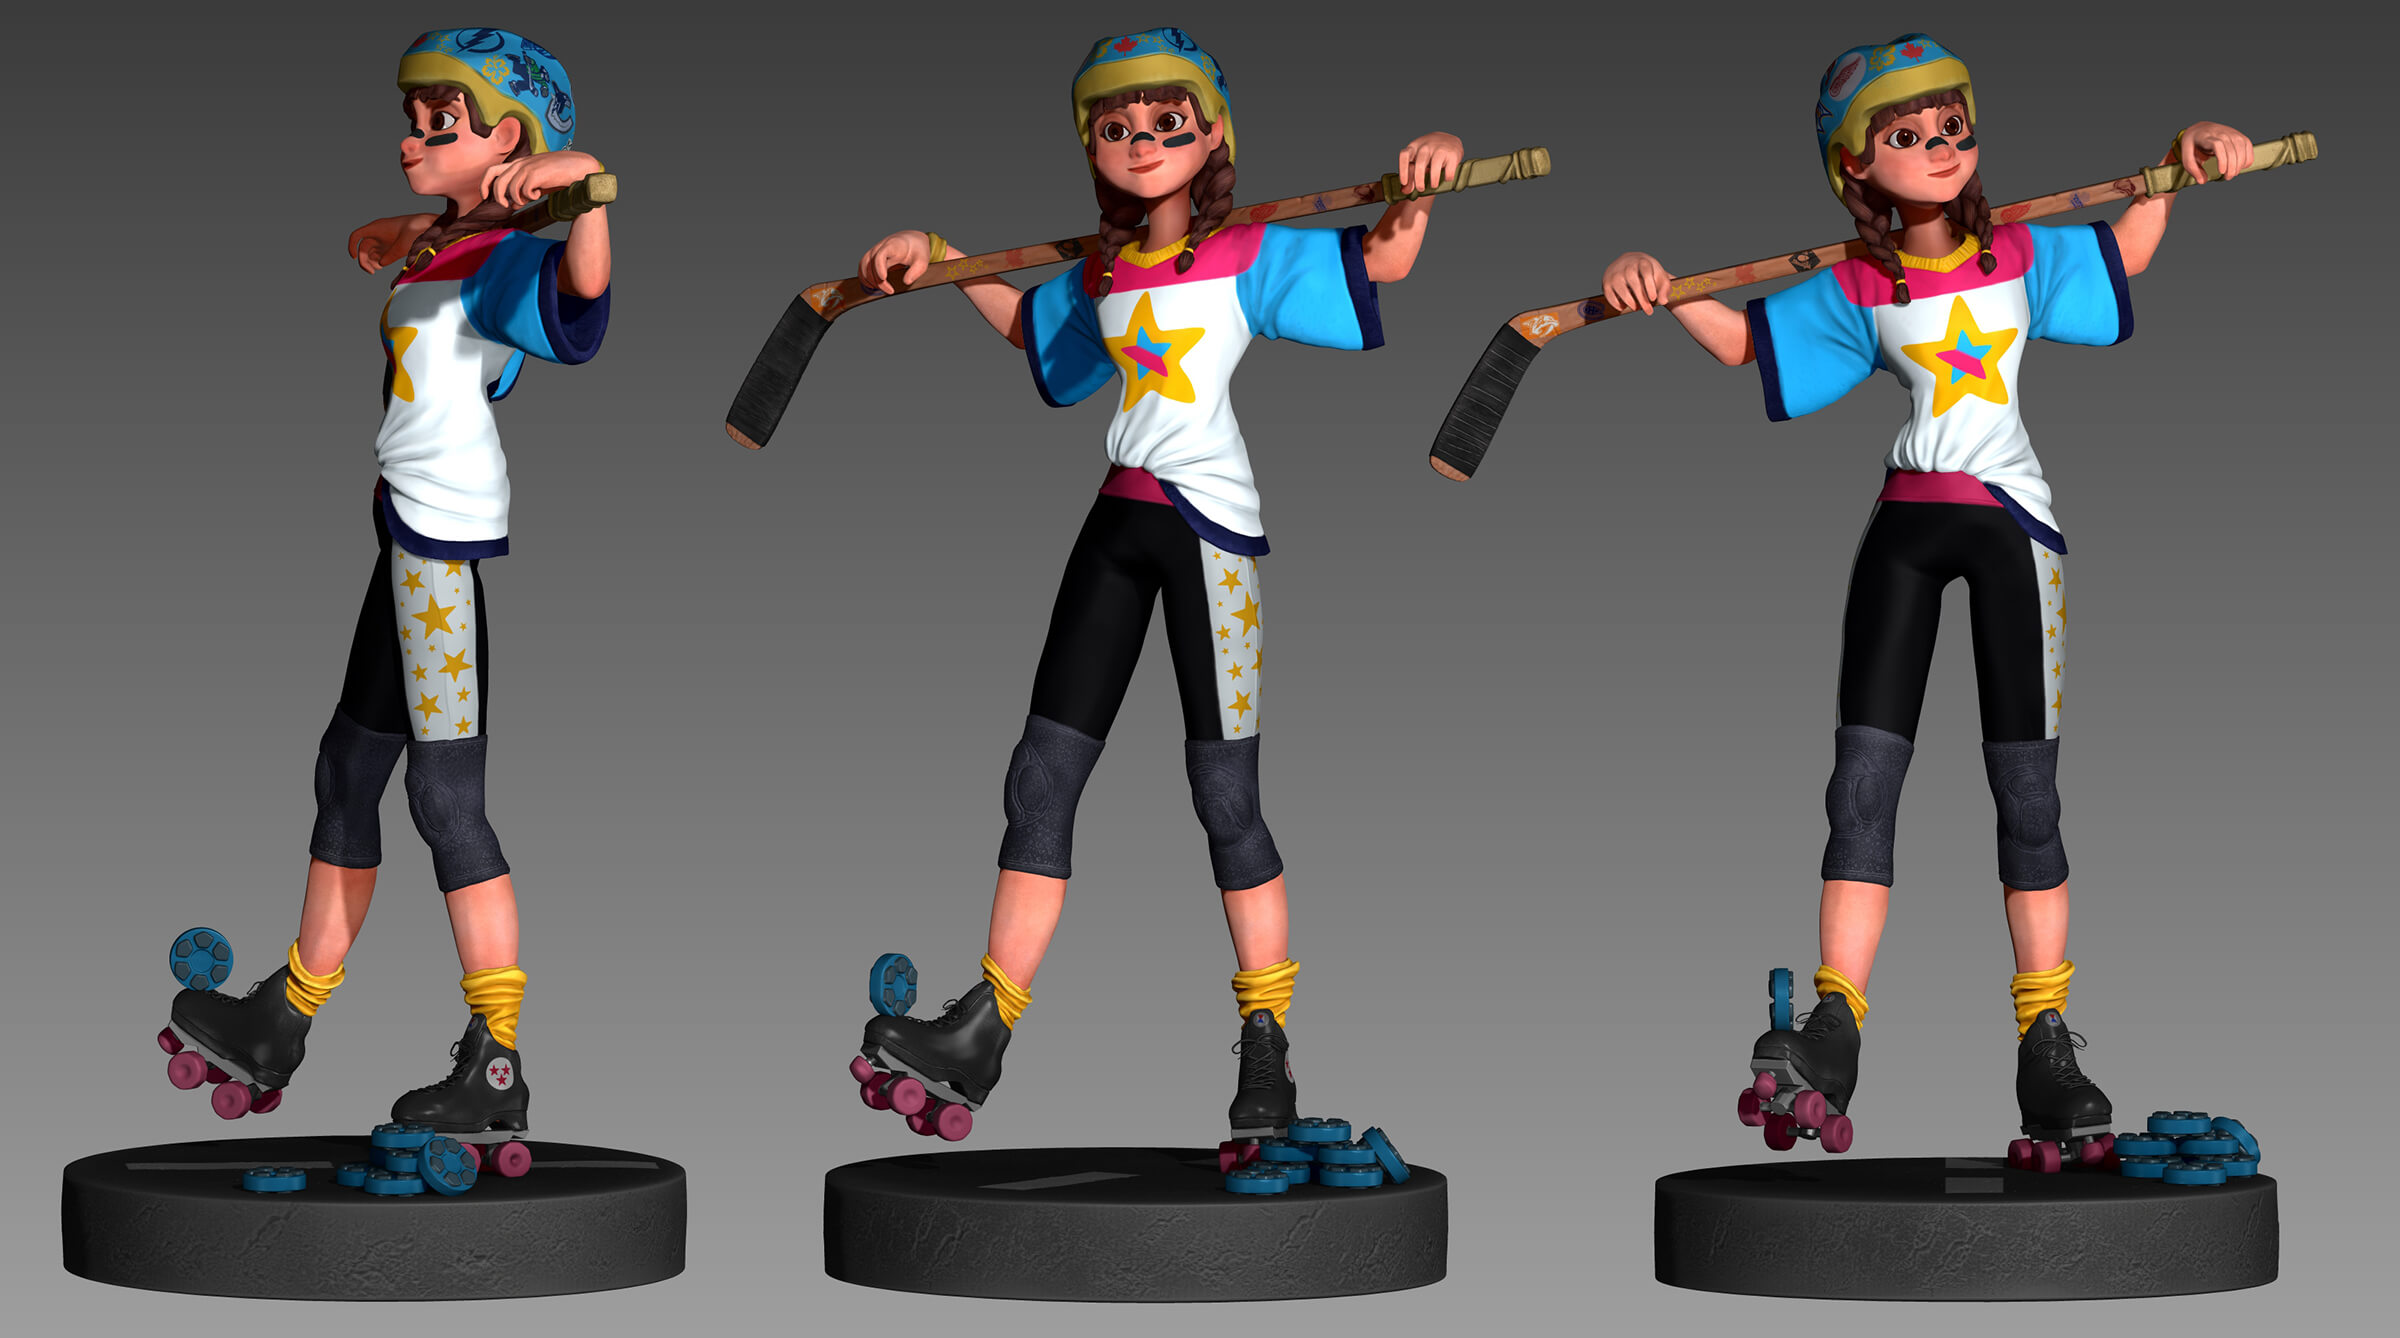 computer-generated 3D model of a girl with pig tails and a lacrosse stick wearing a helmet and roller skates